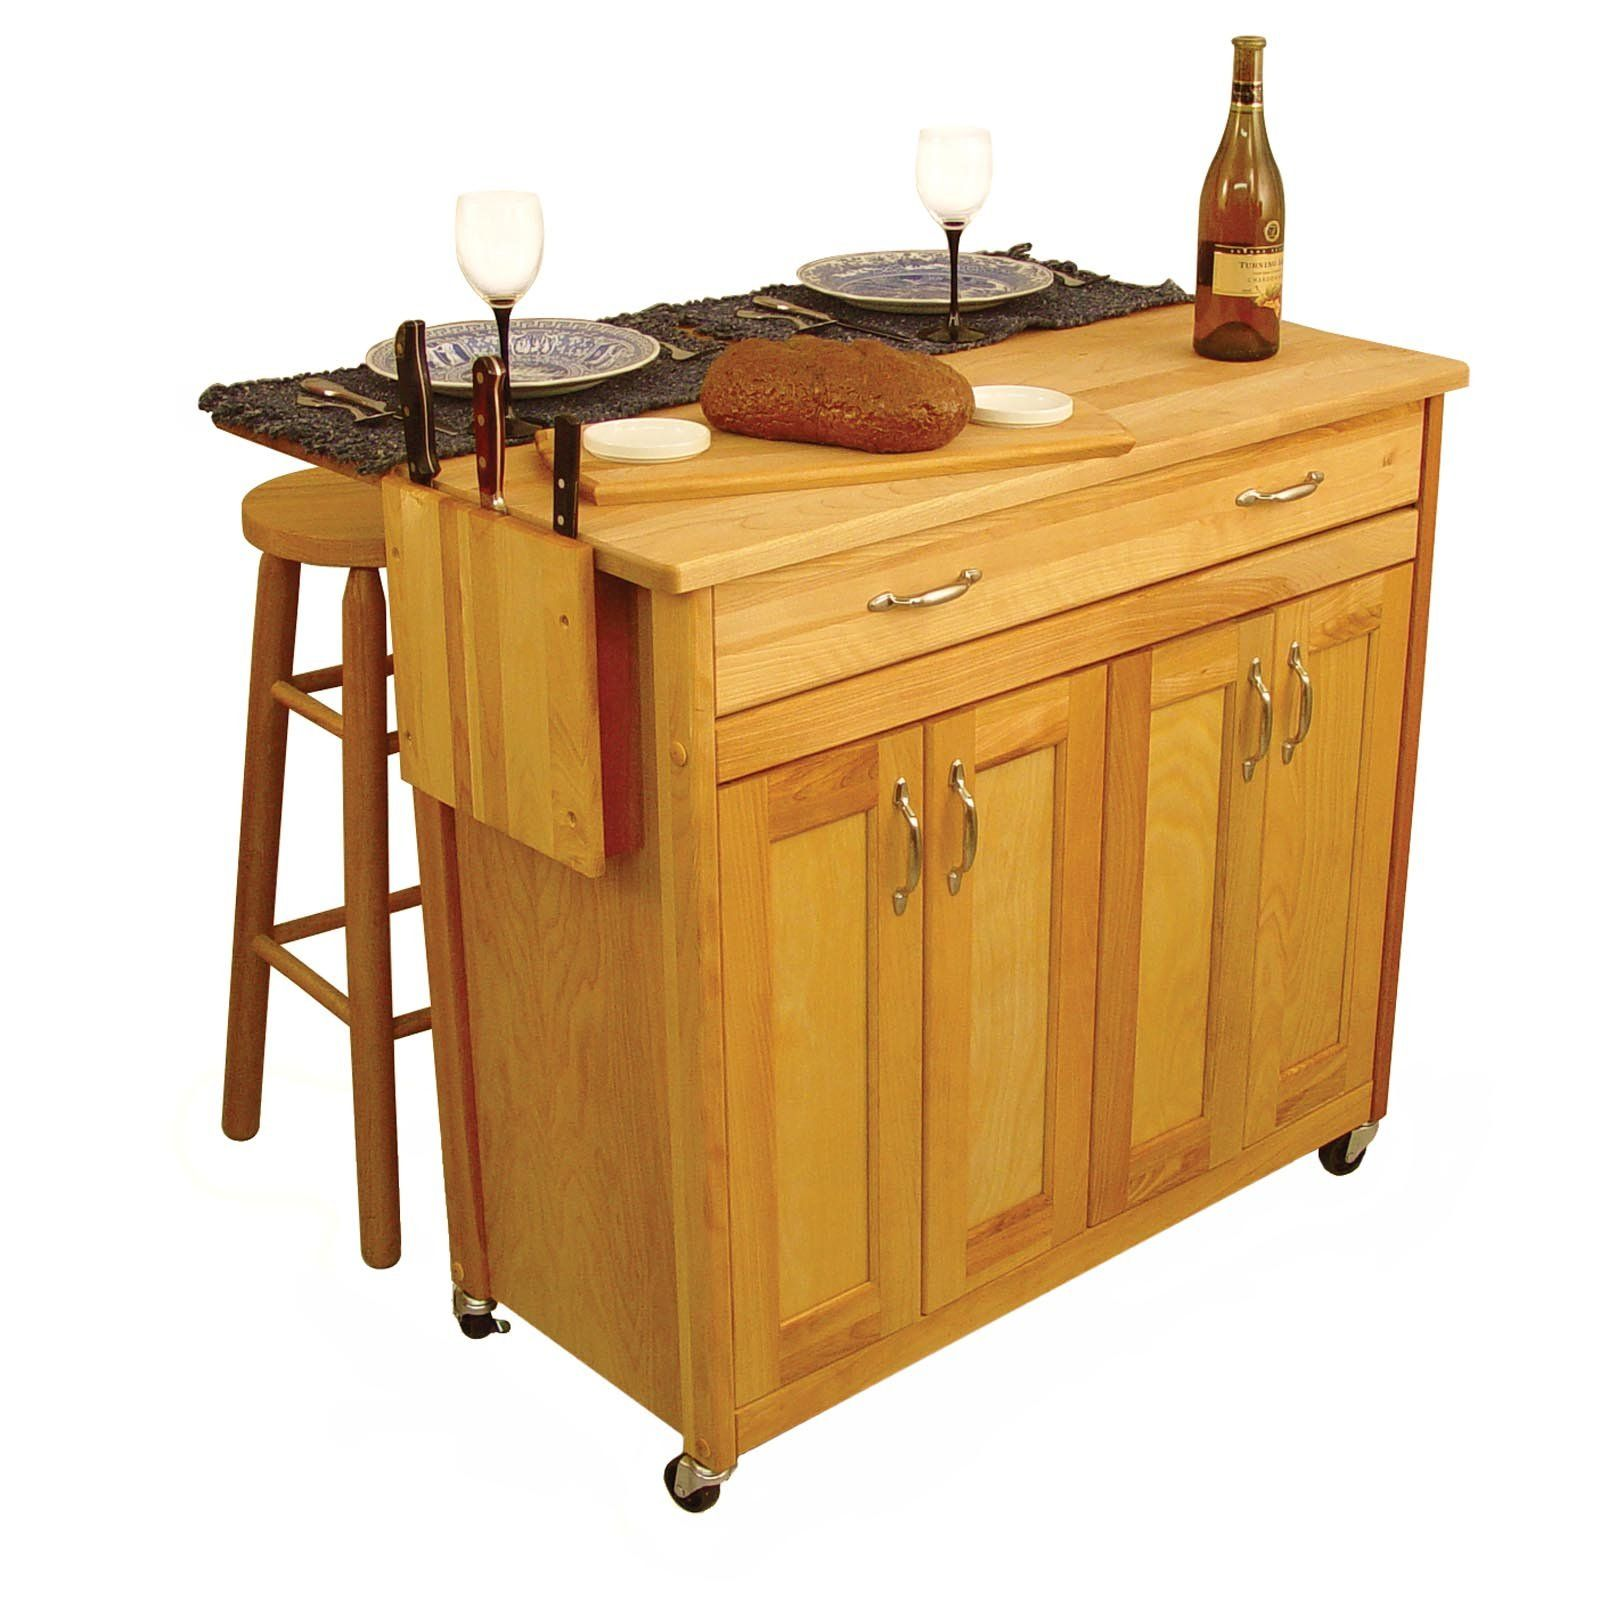 Charmant Mid Size Super Kitchen Island   Catskill Craftsmen 1538 A Conveniently  Sized Super Island Featuring All Of The Exceptional Features Of The